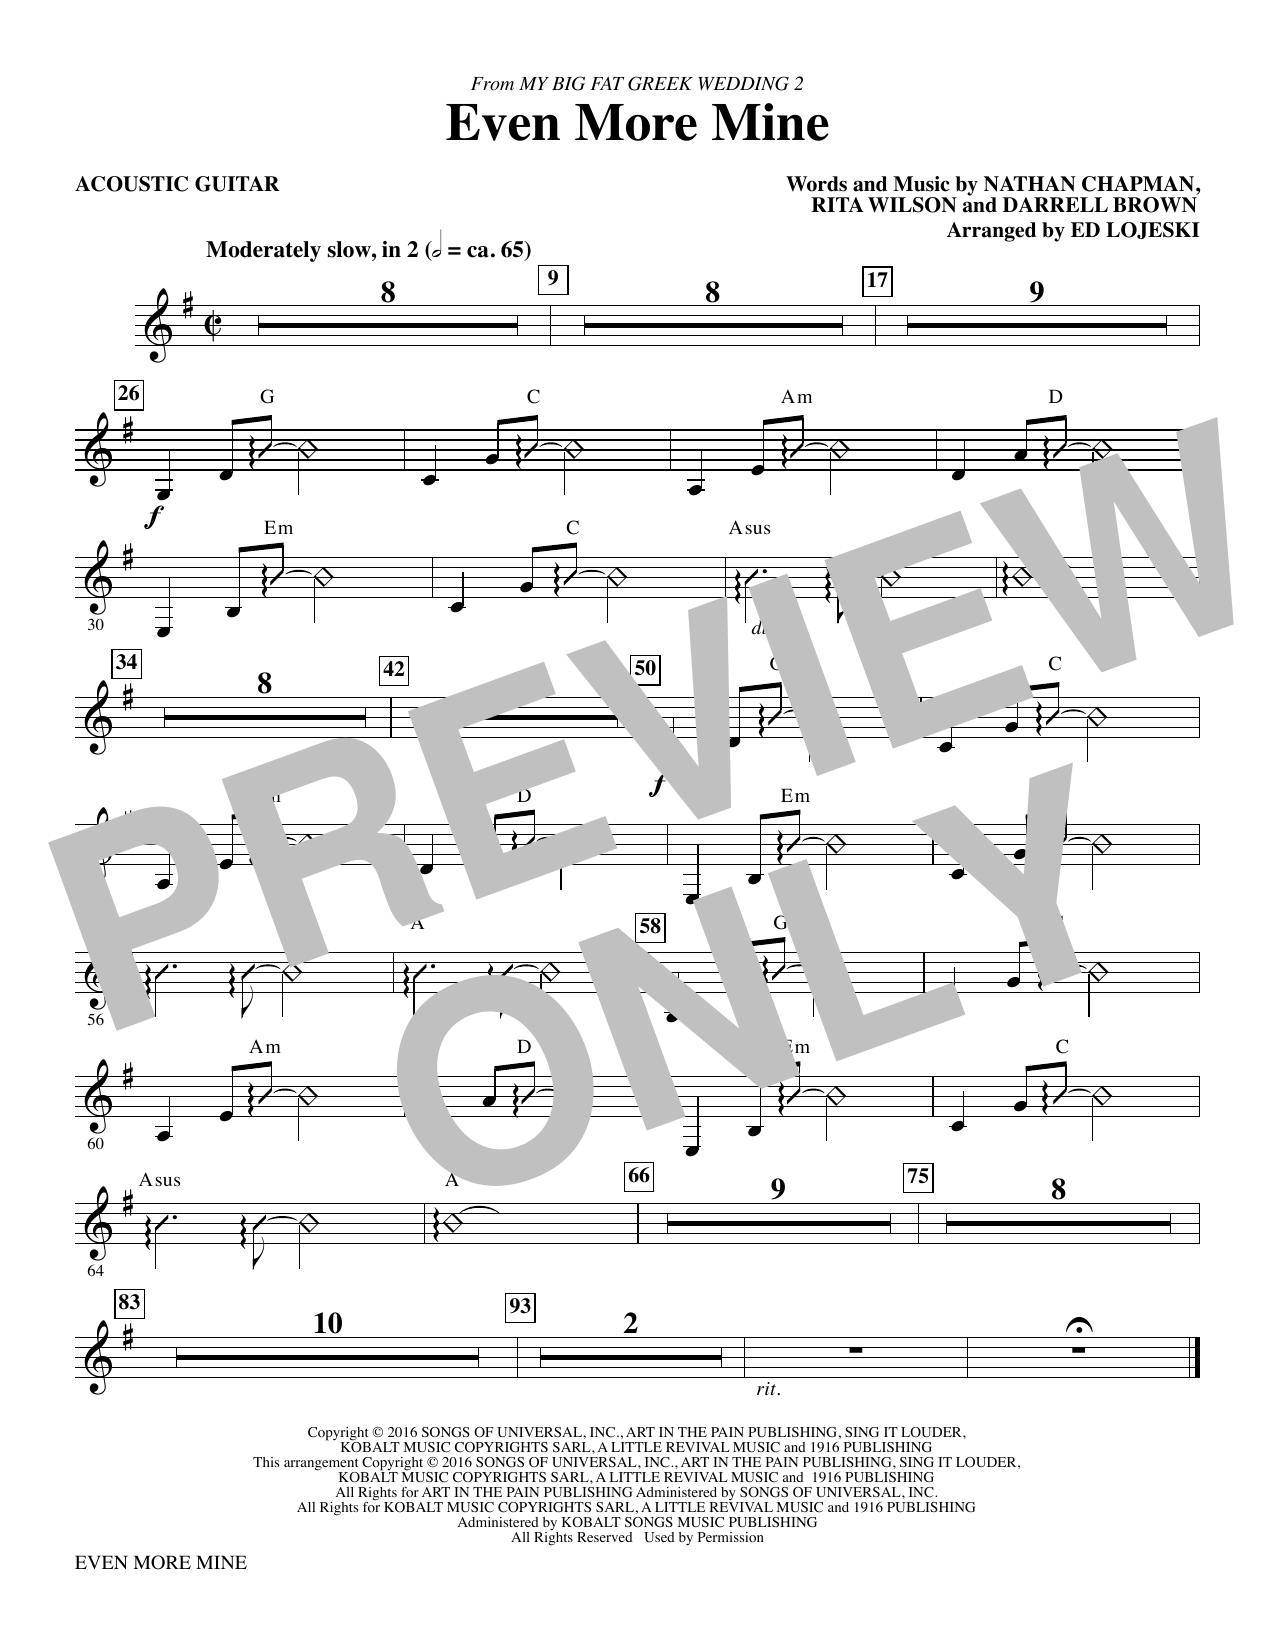 Even More Mine - Acoustic Guitar Sheet Music